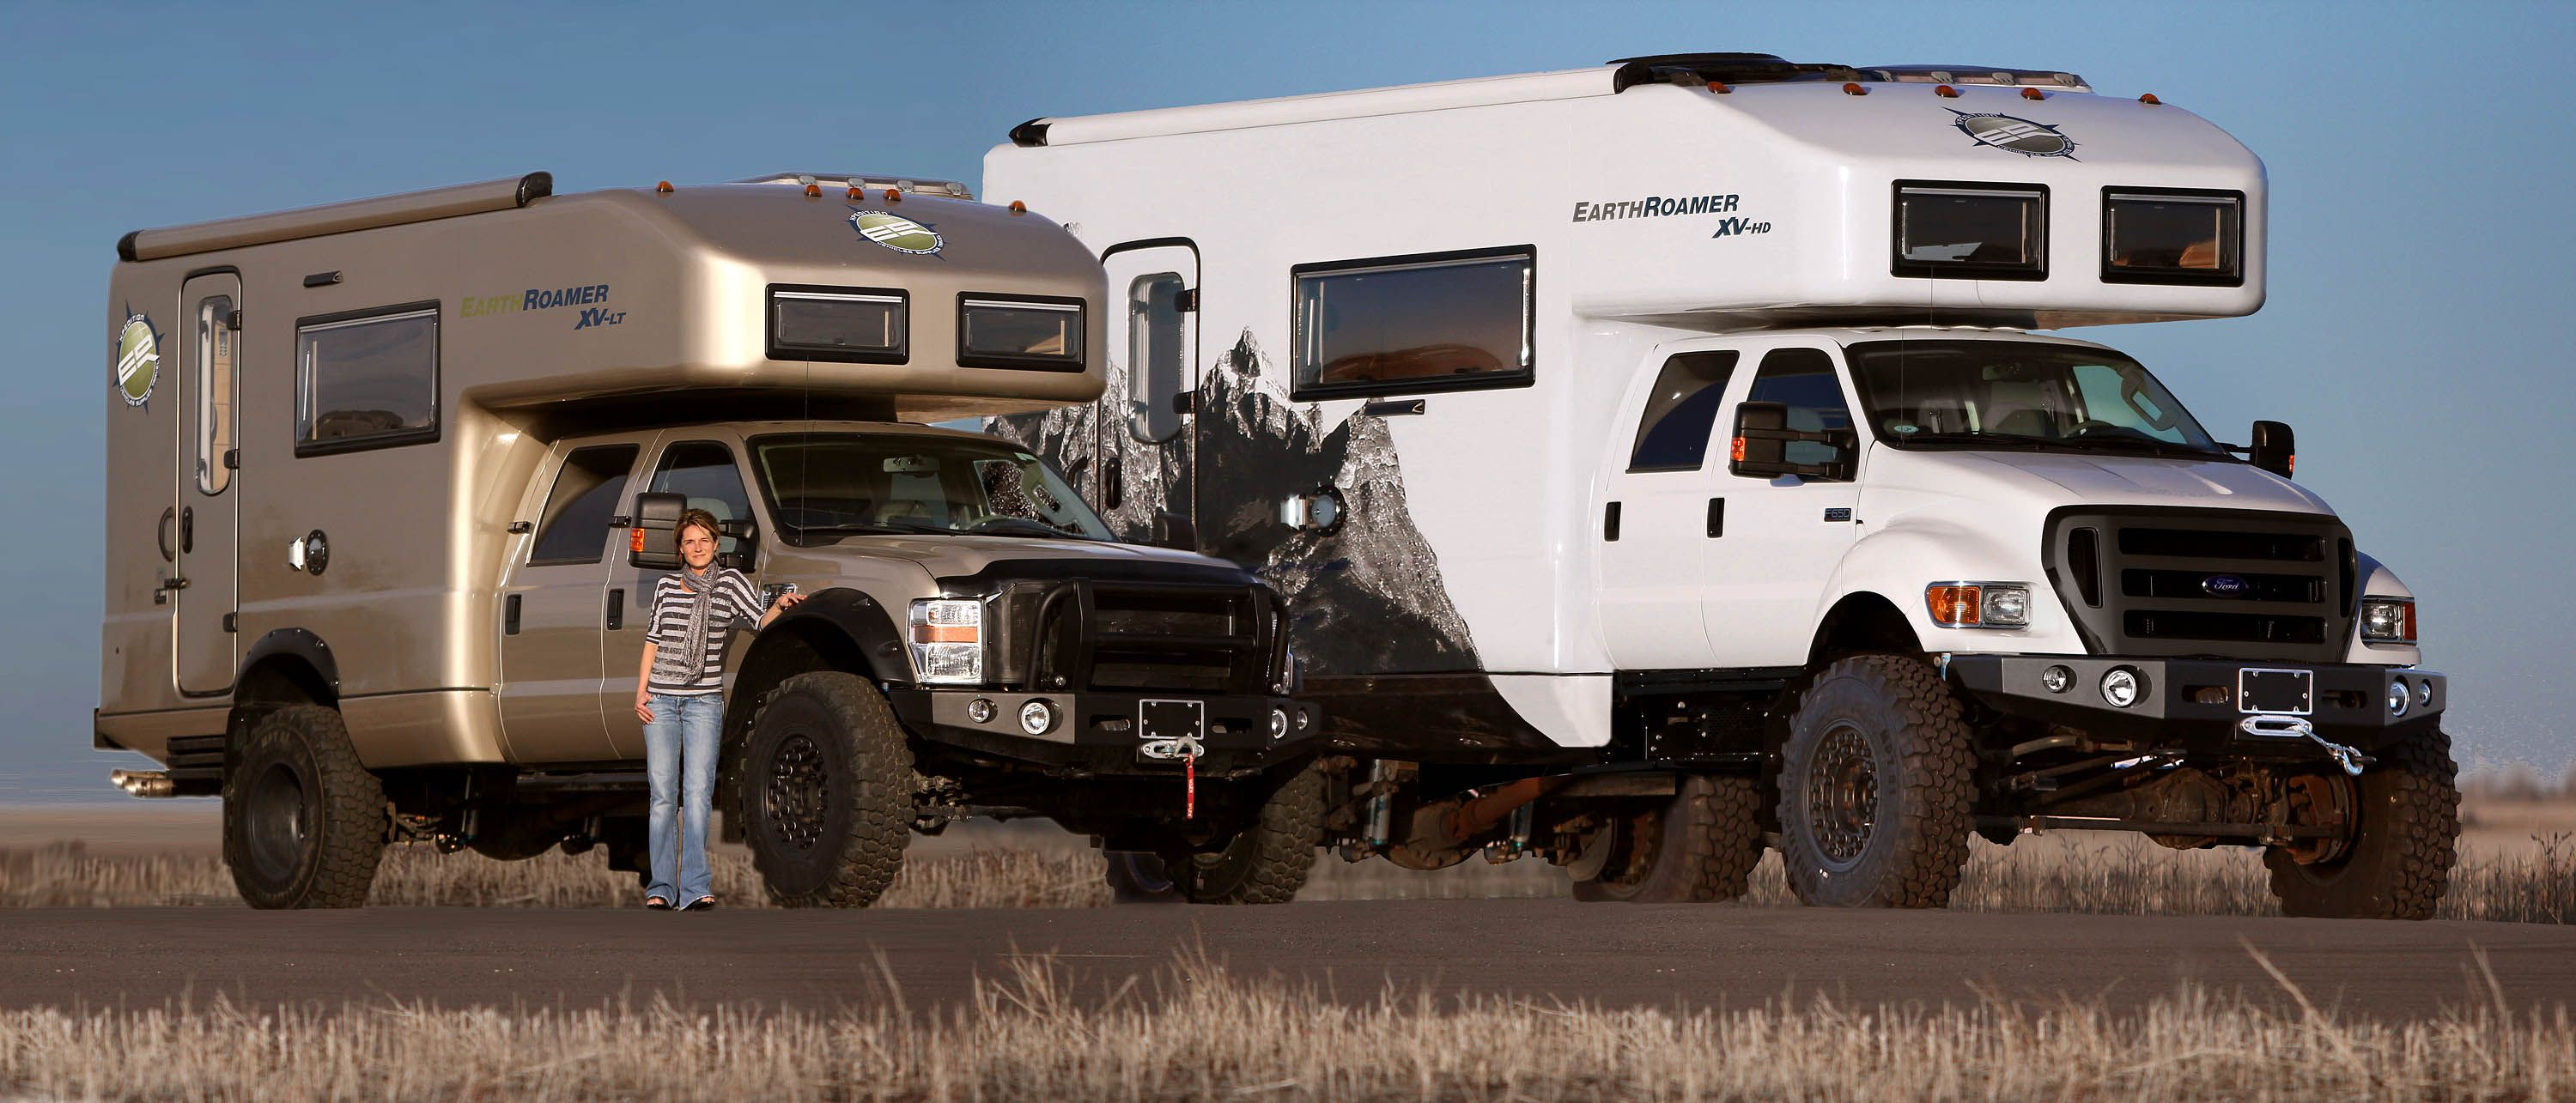 EarthRoamer     One cool a$$ off-road mobile home for the